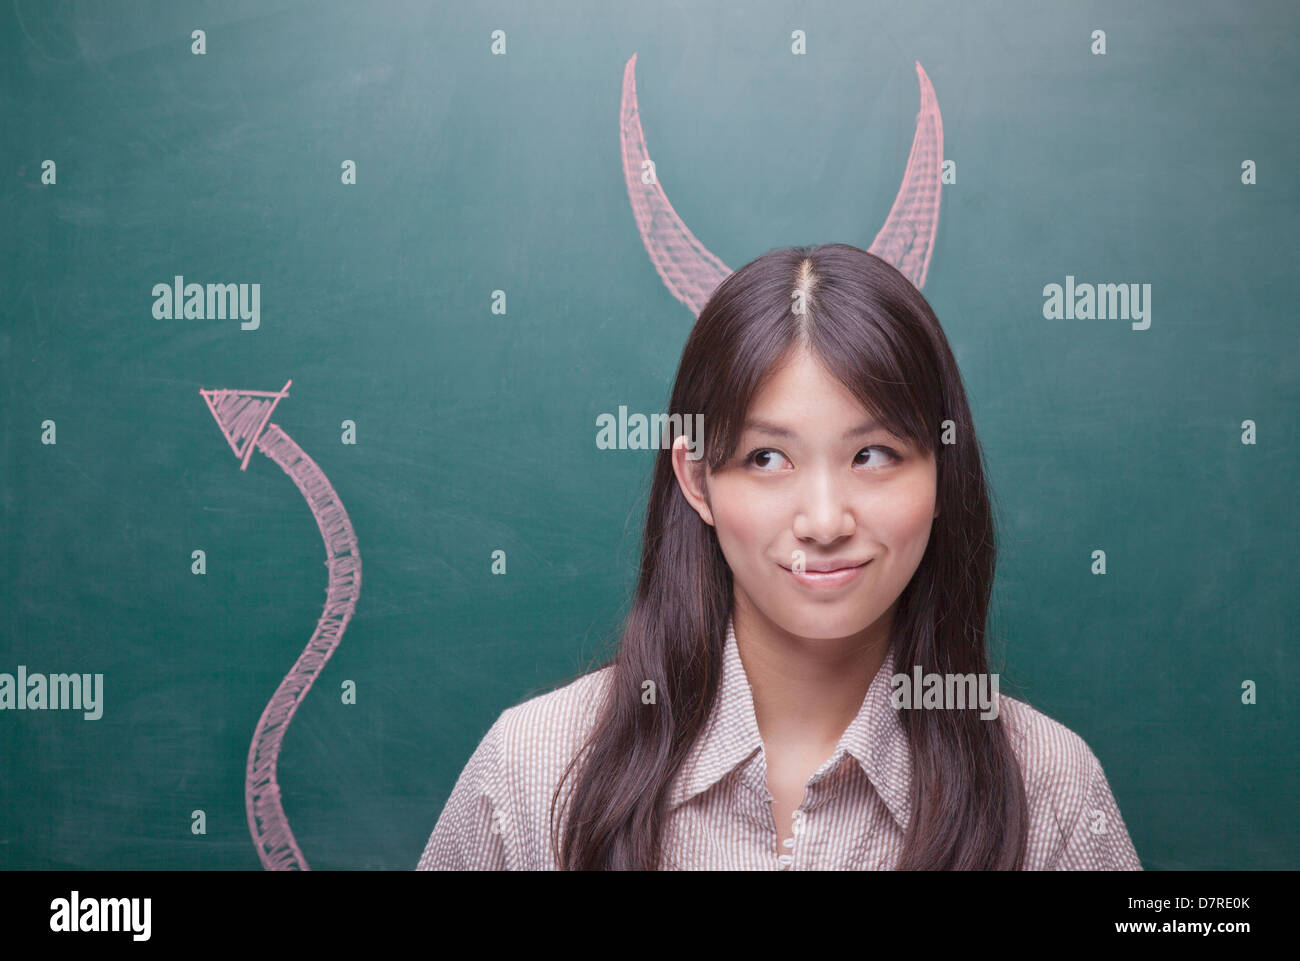 Young woman with devil horns and tail on blackboard Stock Photo